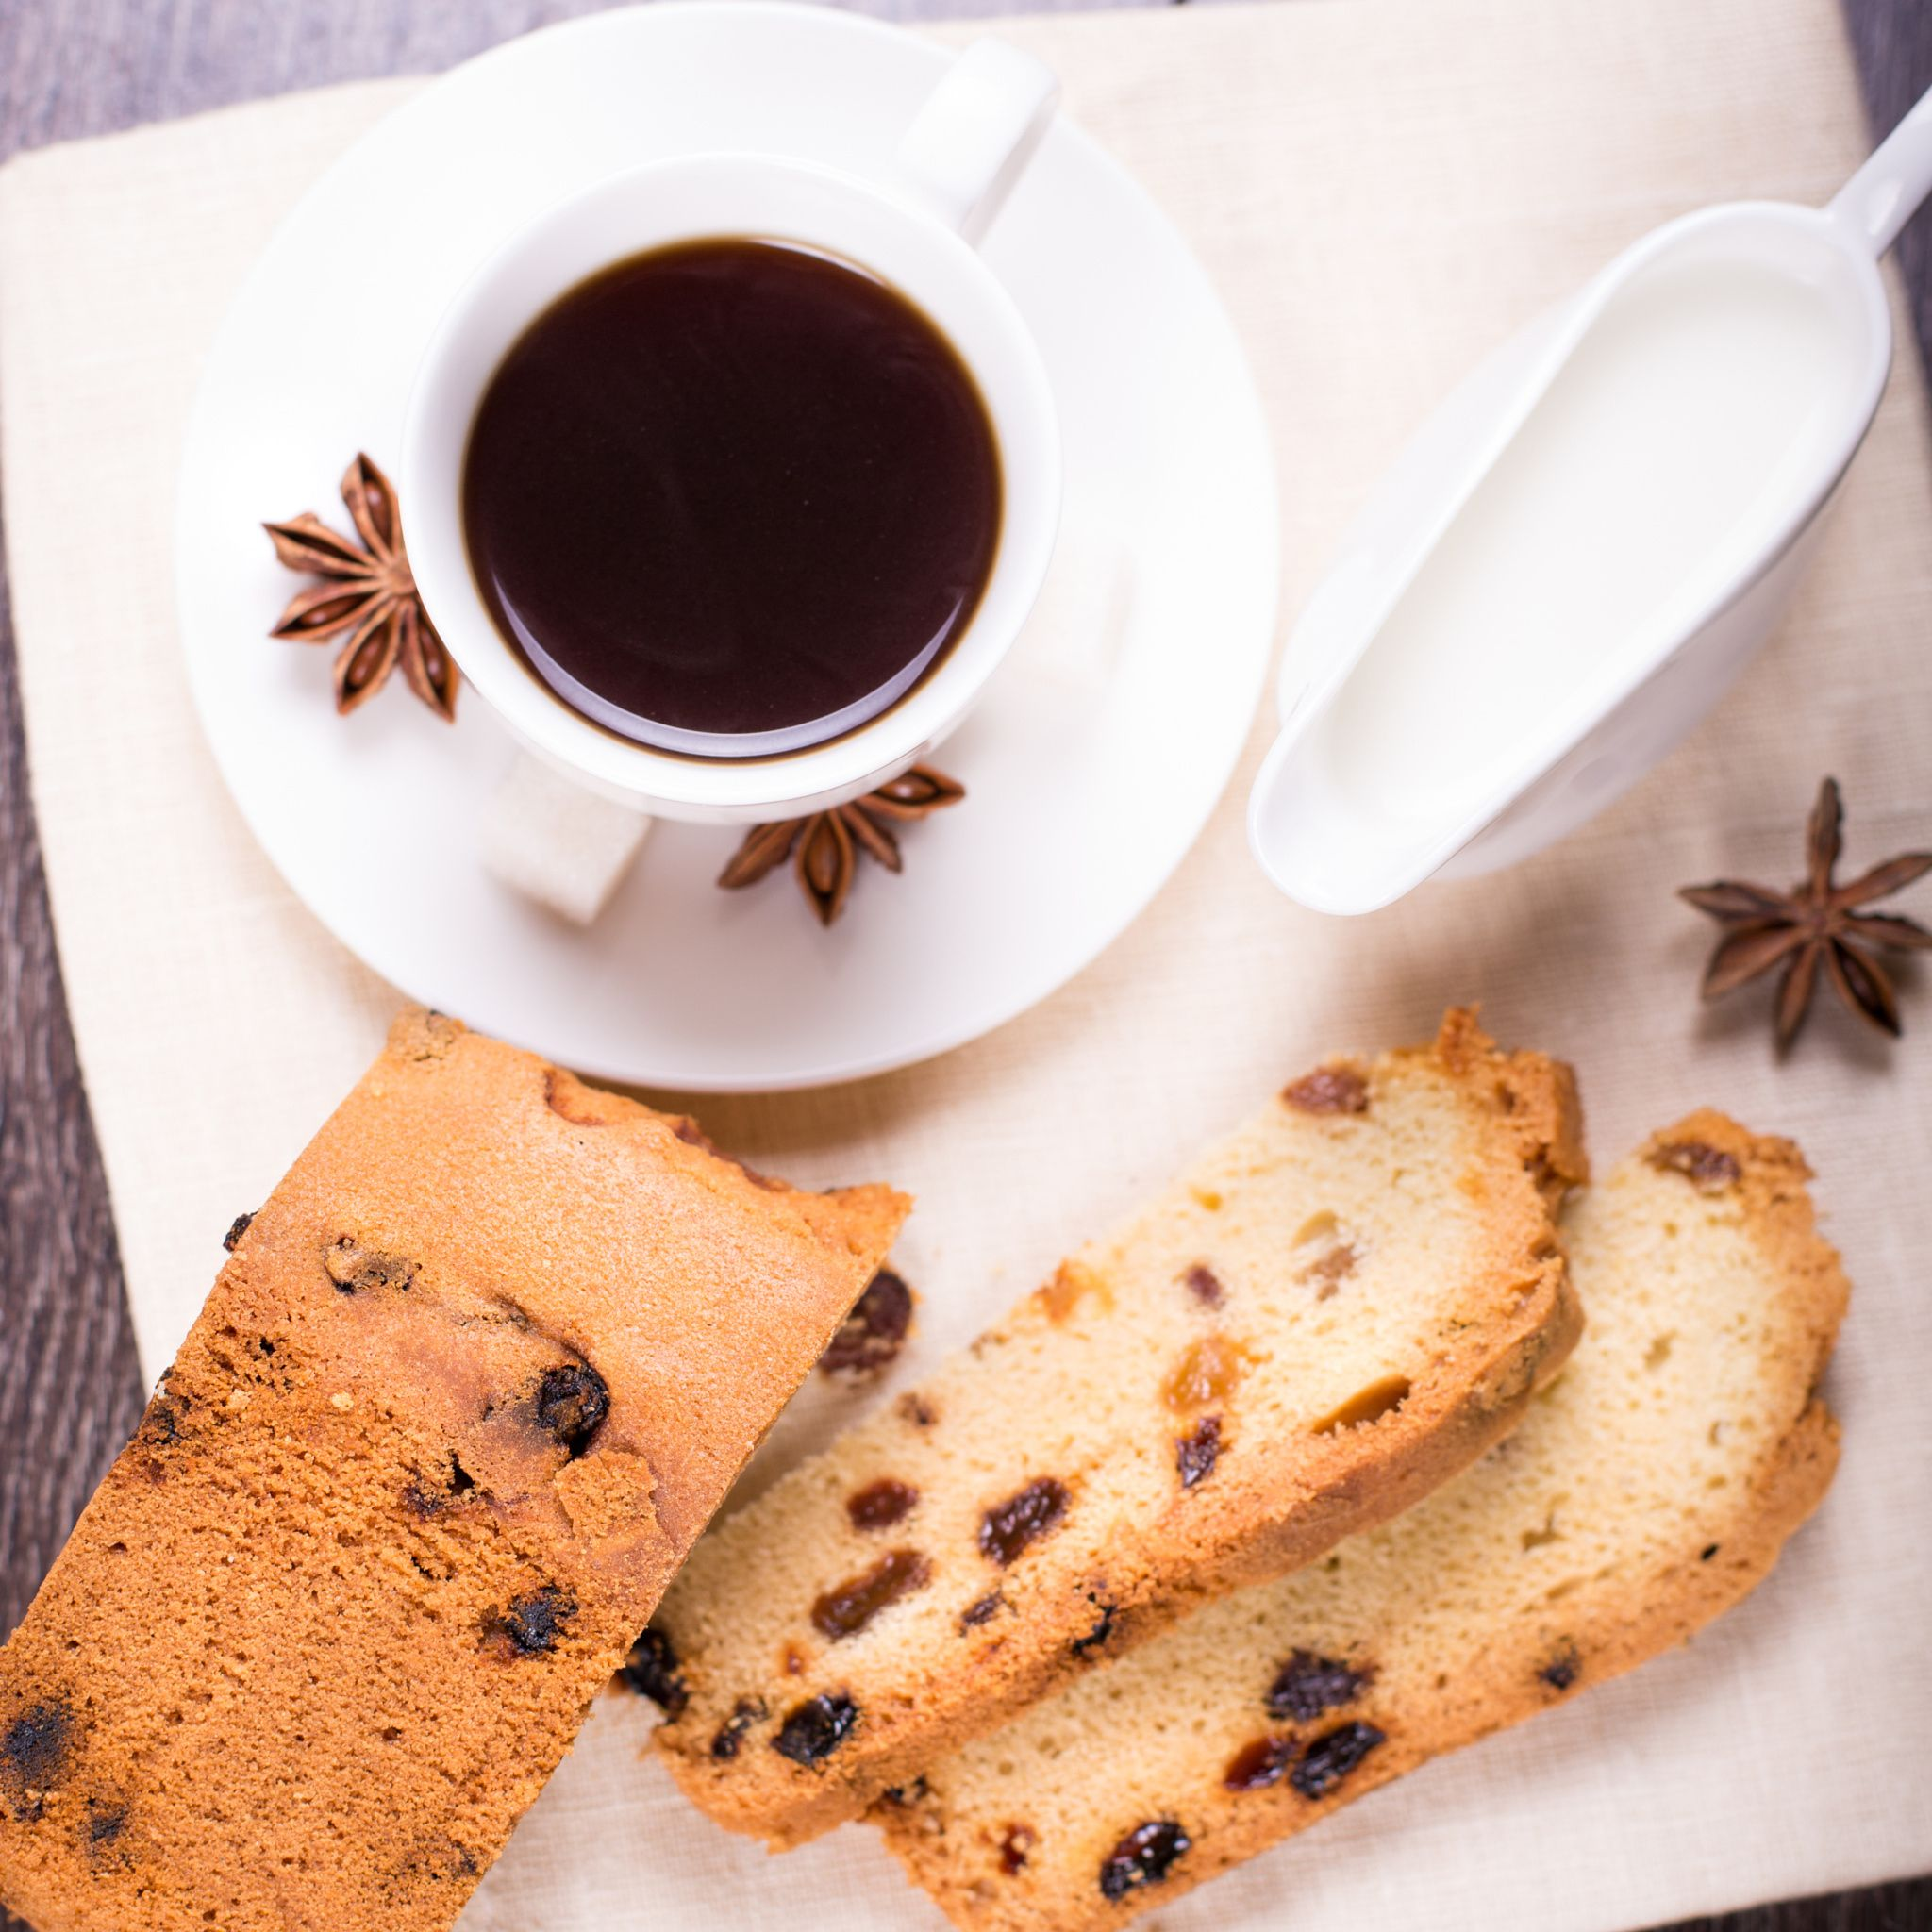 coffee with cake by олег пилипчук on 500px